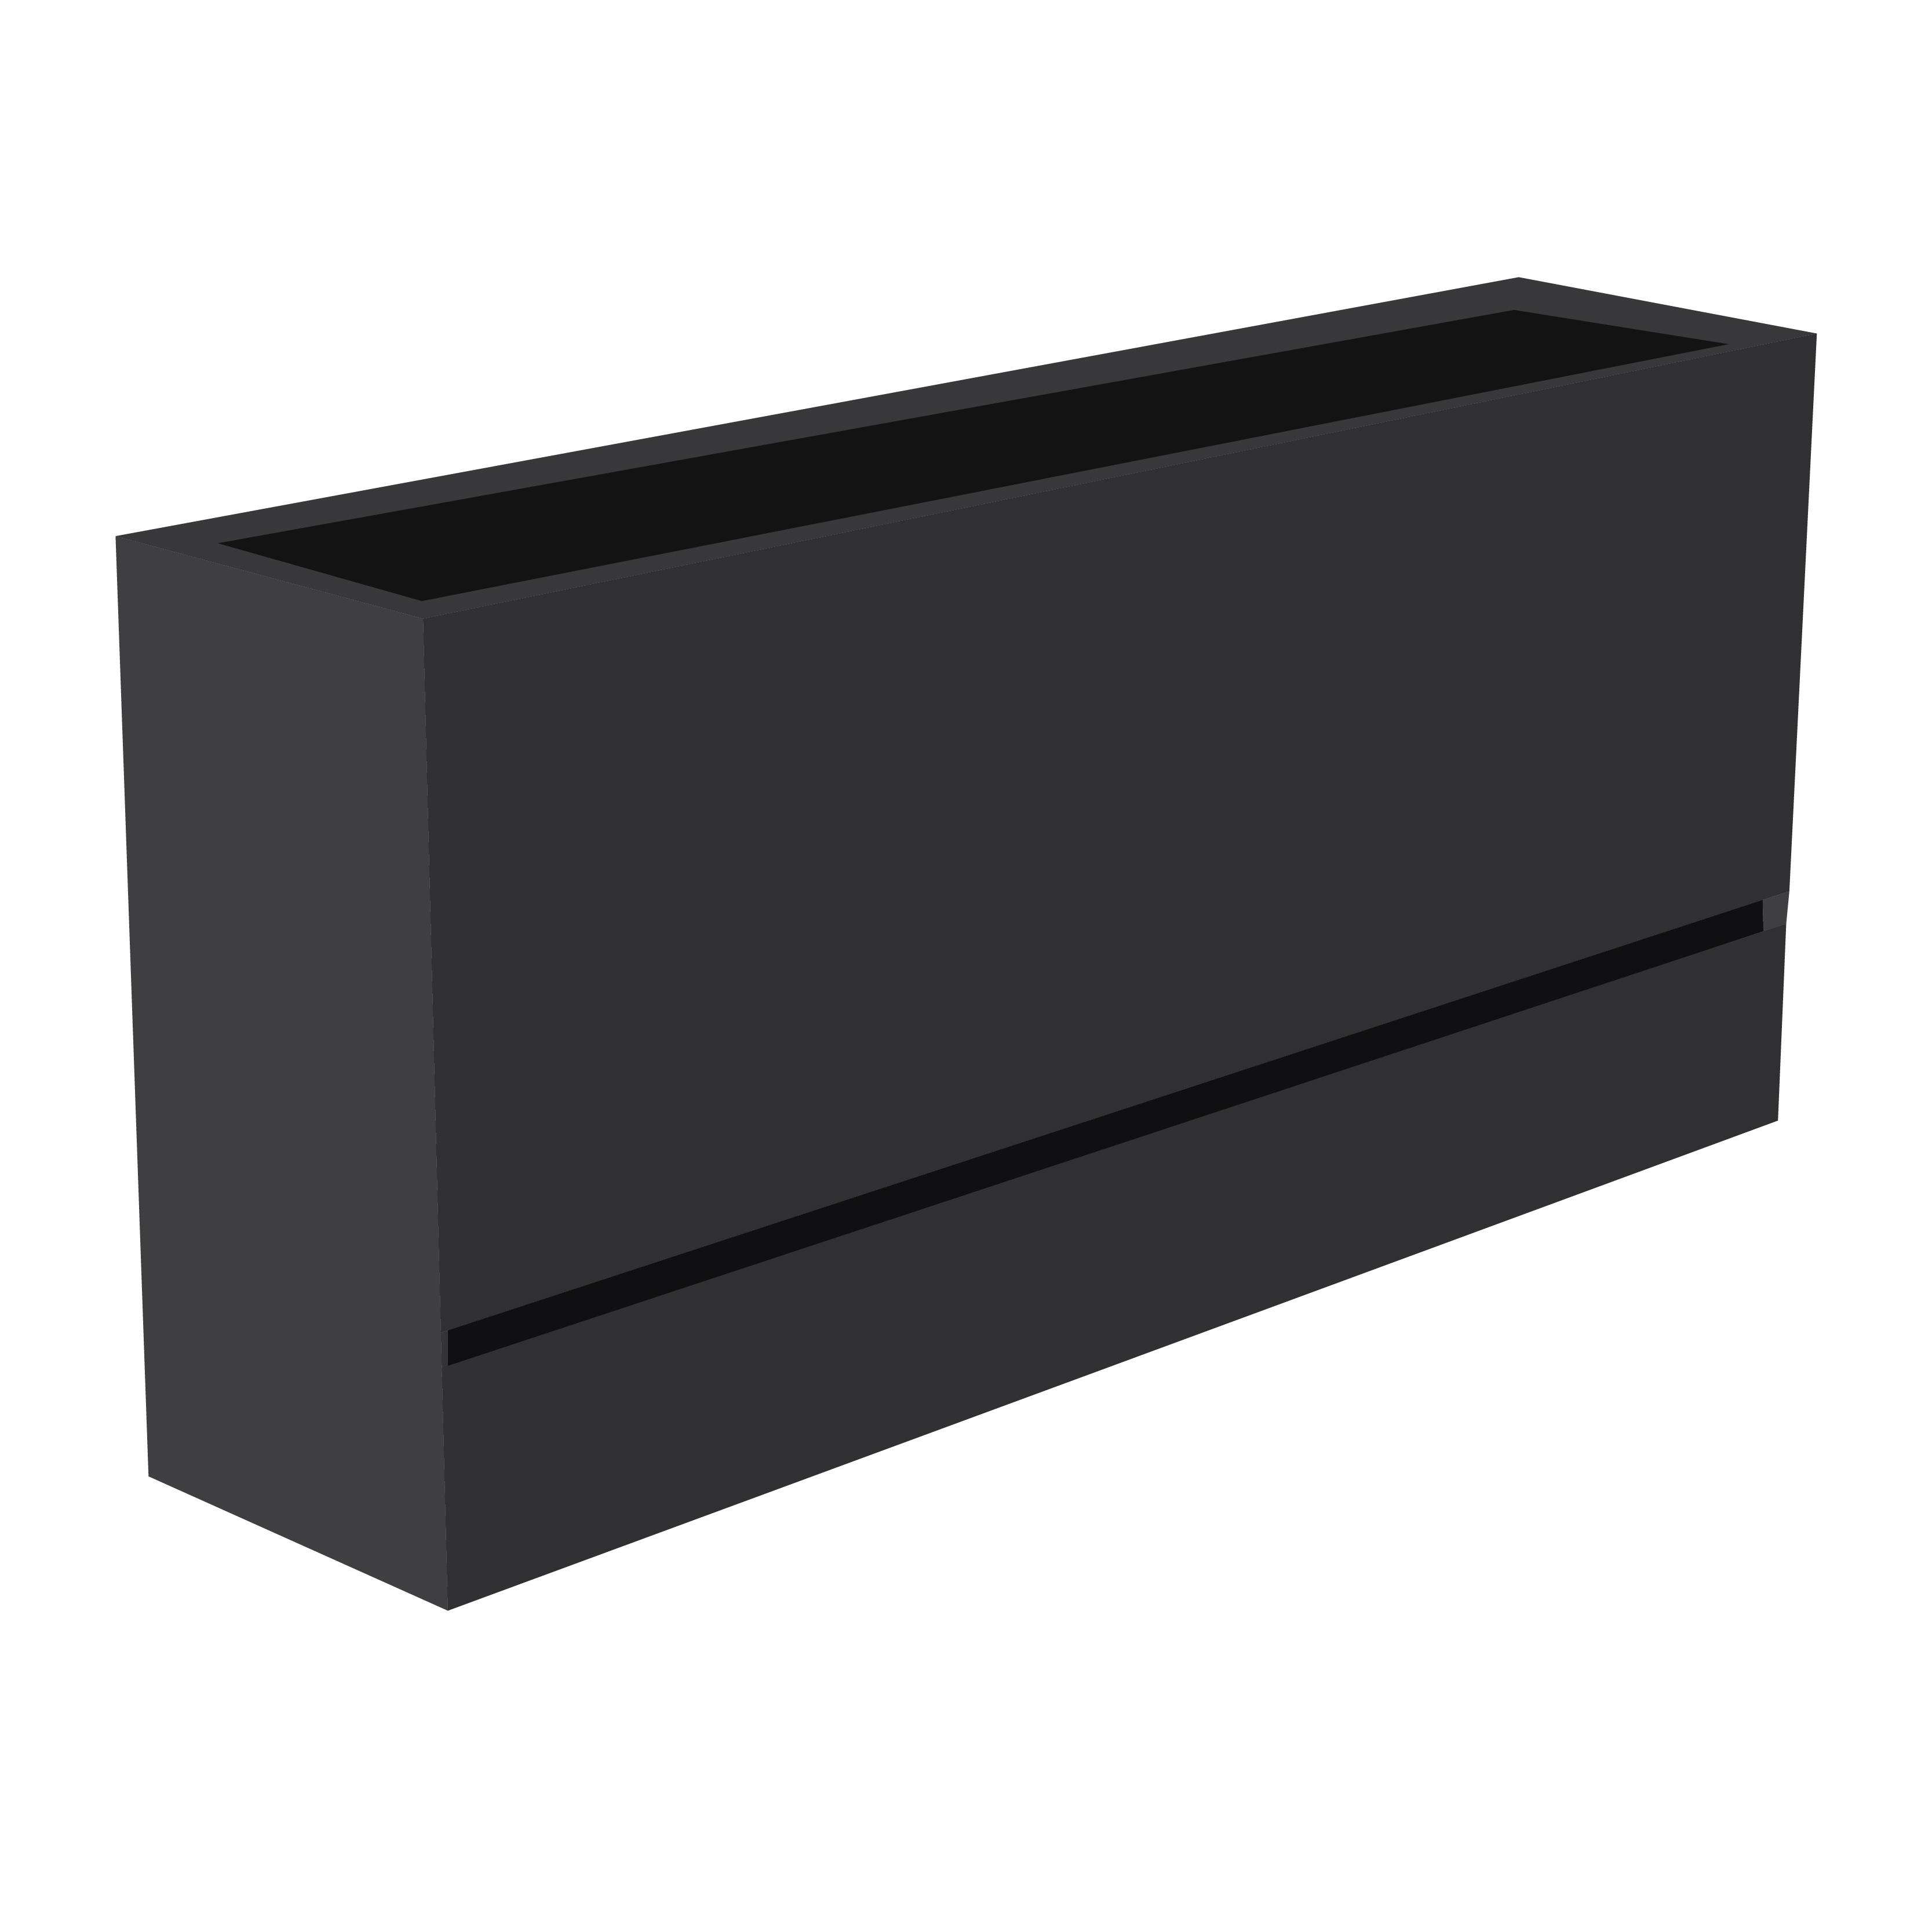 Slash by Unonovesette – 23 7/16″ x 5 7/8″ , Wallwash offers high performance and quality material   Zaneen Exterior